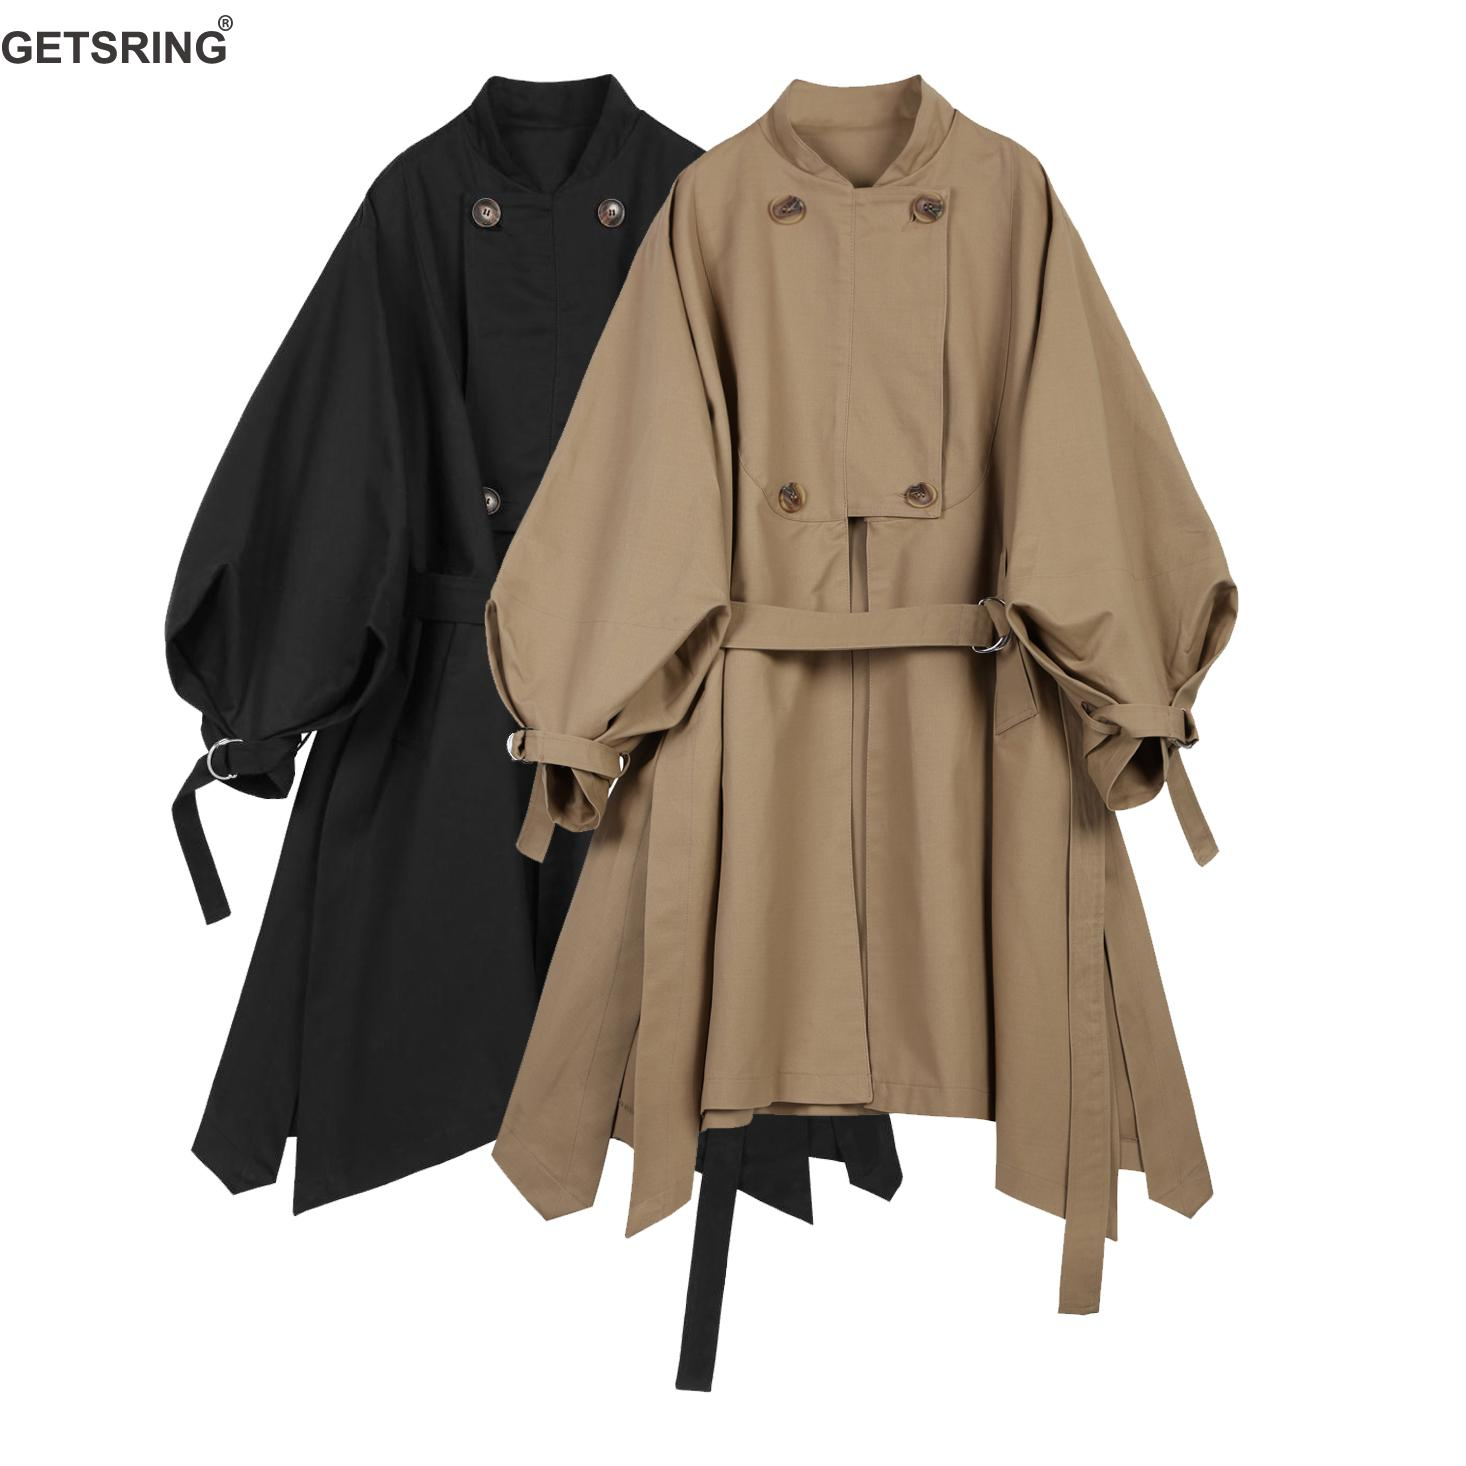 GETSRING Womens   Trench   Coats Lantern Sleeve Irregular Hem Cotton Windbreakers Long Sleeved Lace Up Long Female Overcoat Autumn